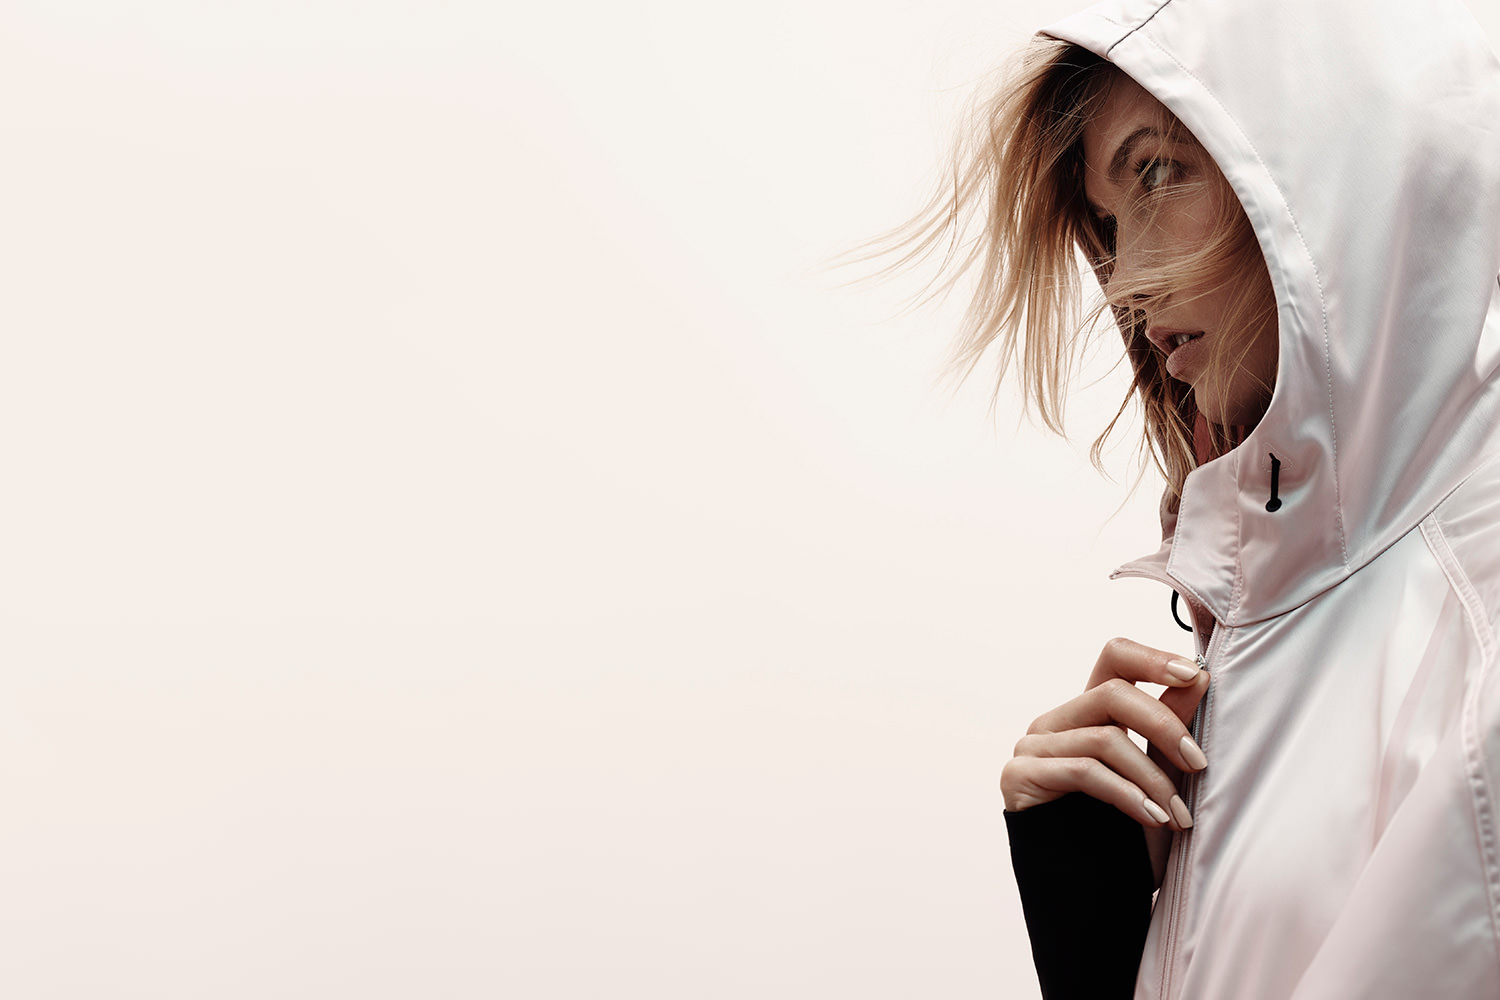 nike-pedro-lourenco-collection-karlie-kloss-03